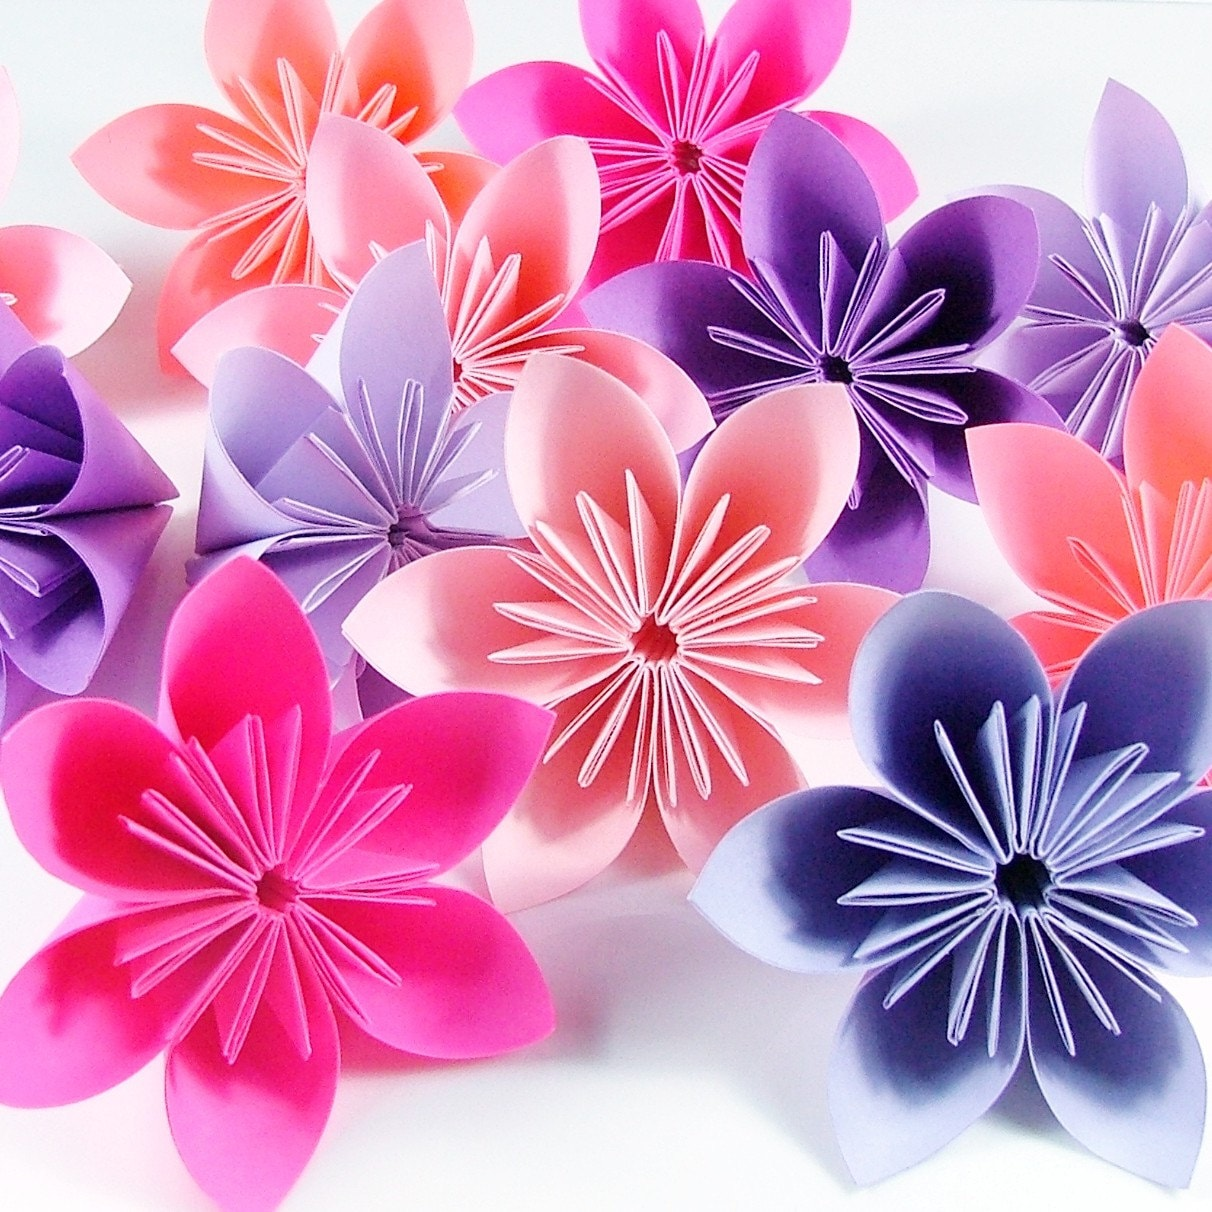 Origami Flowers 20pcs Purple And Pink By Justpatchshop On Etsy